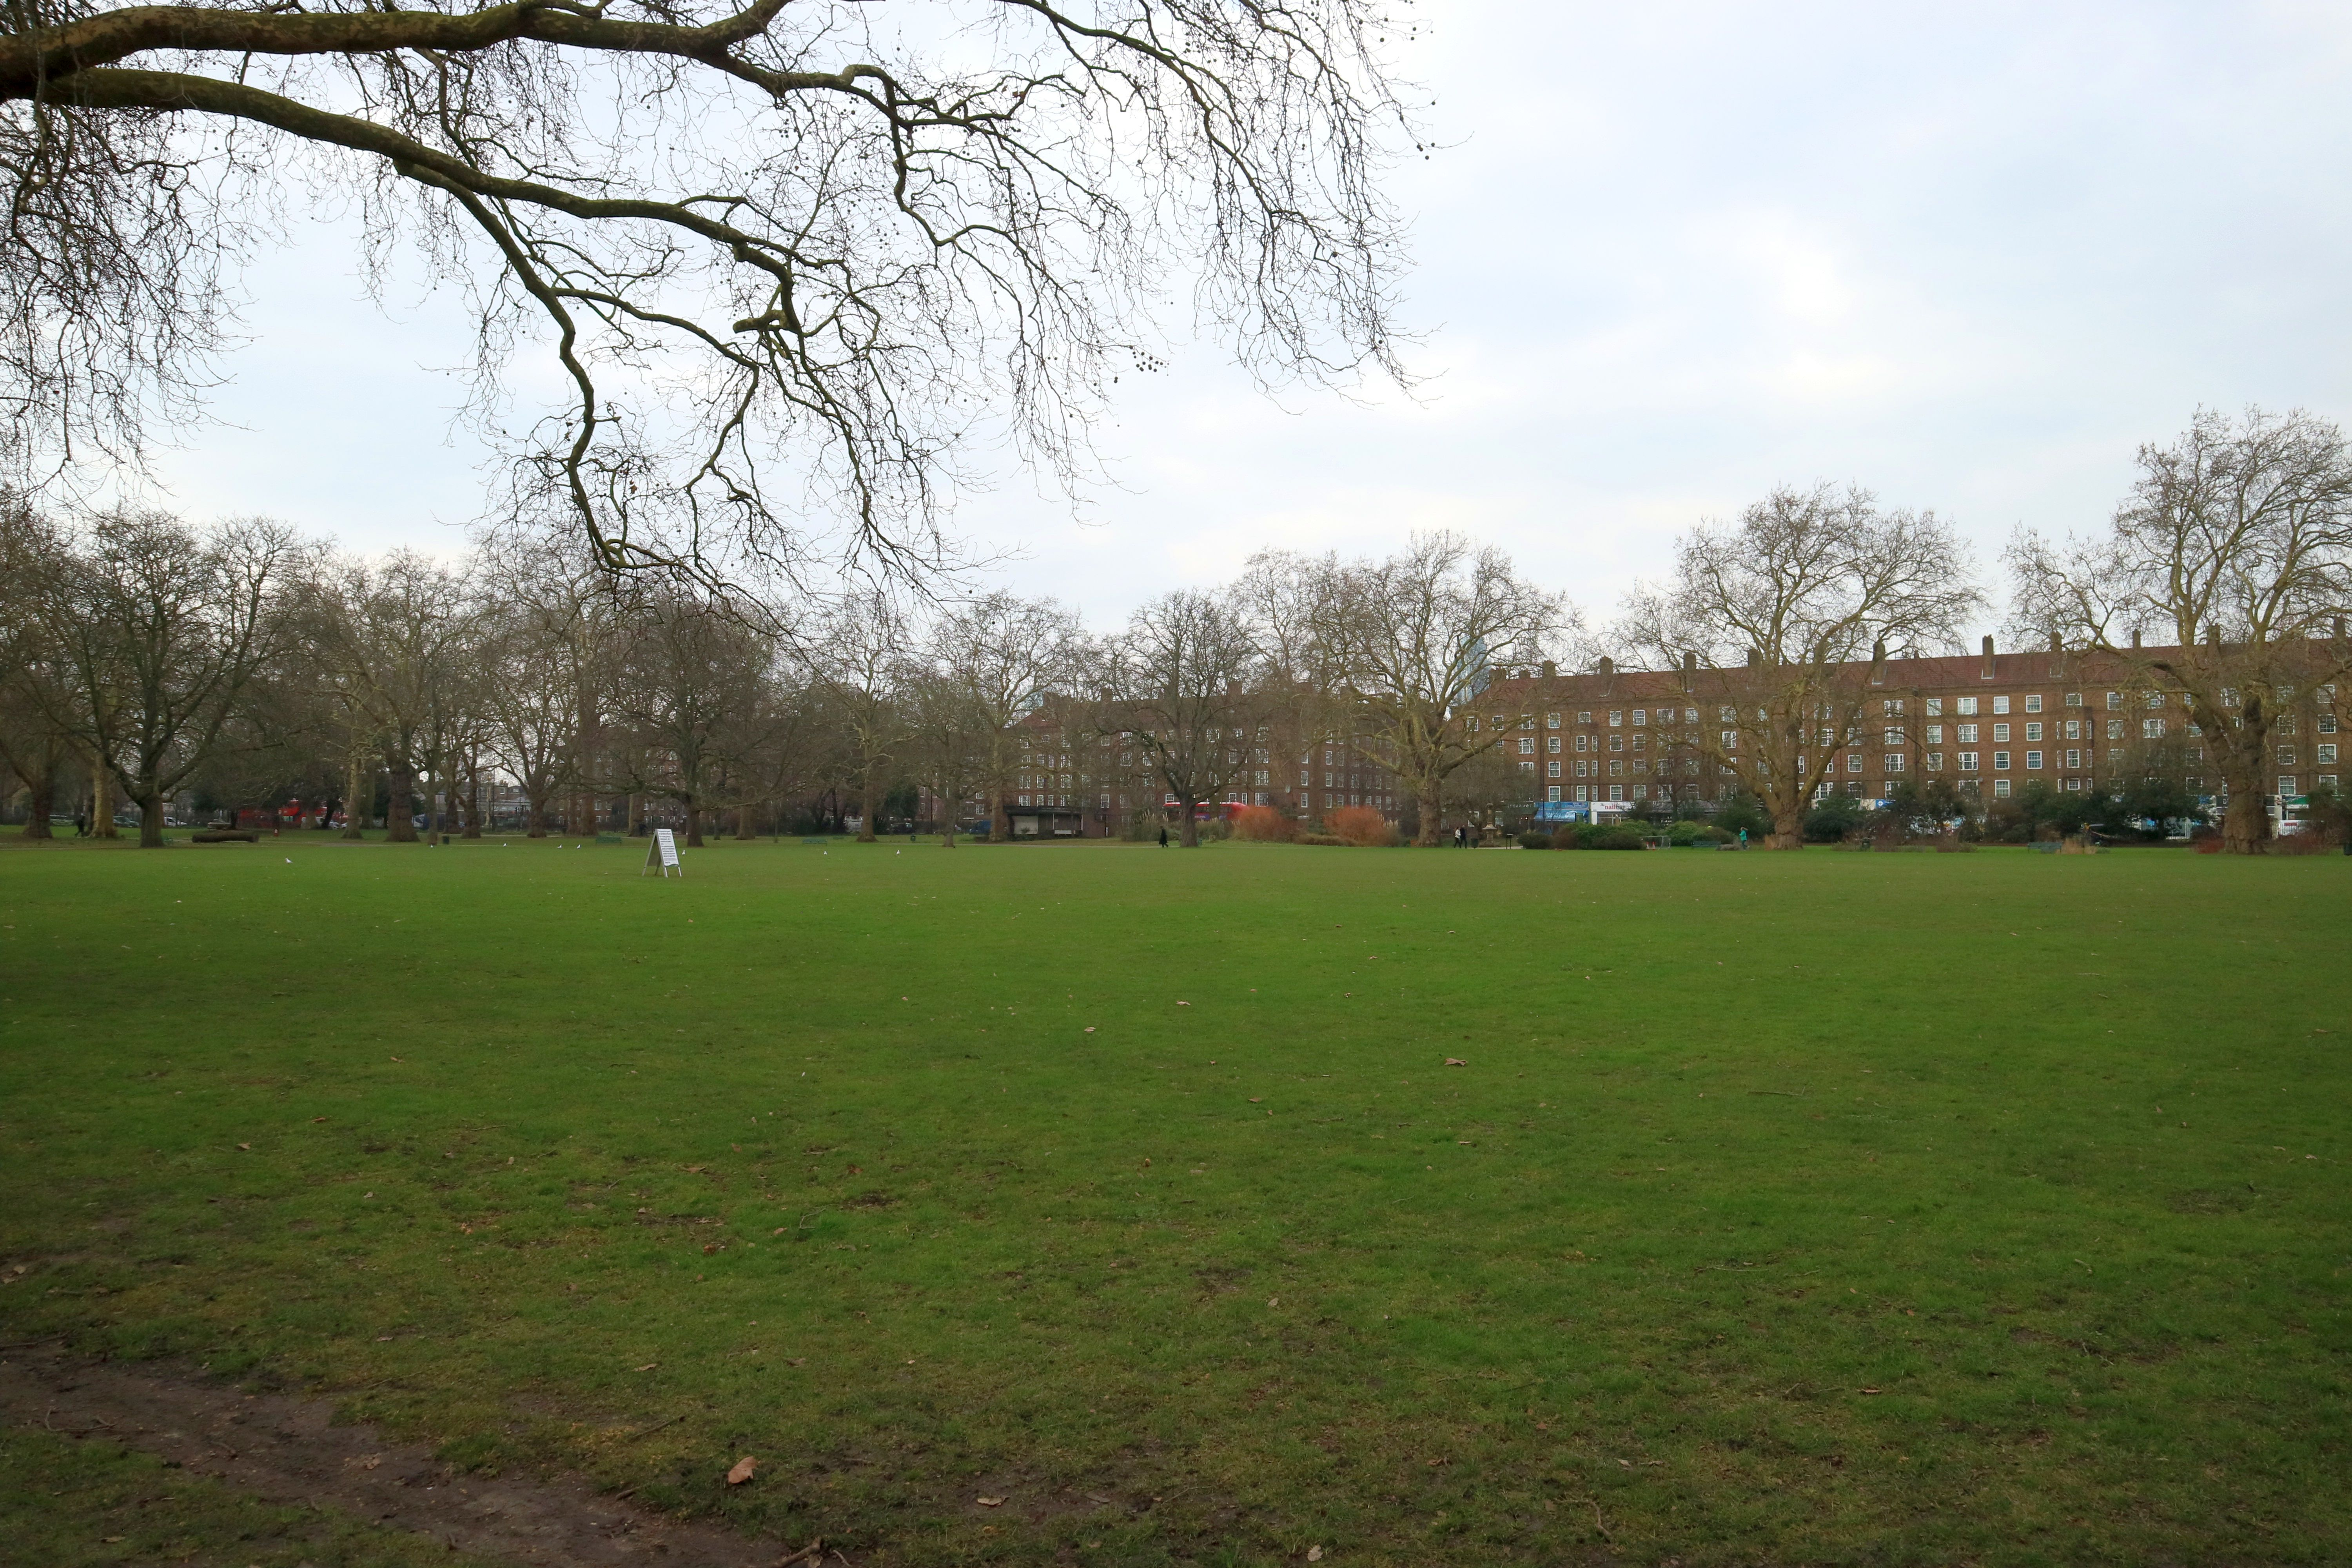 Kennington Common, 22 Feb 2018